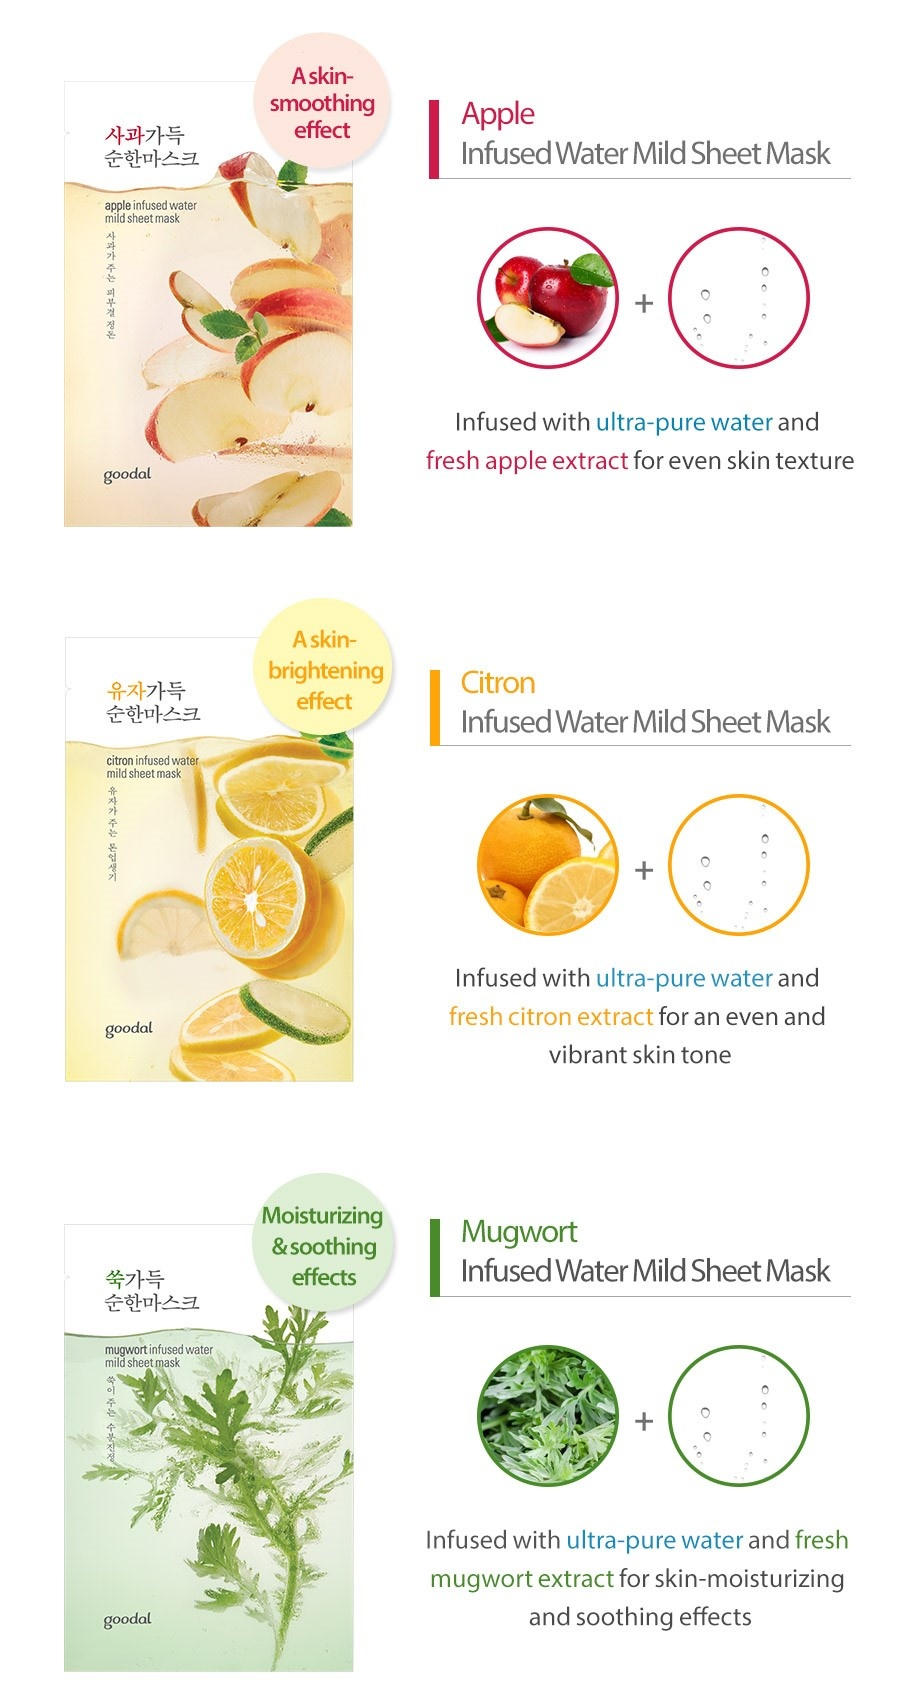 apple infused water mild sheet mask-5